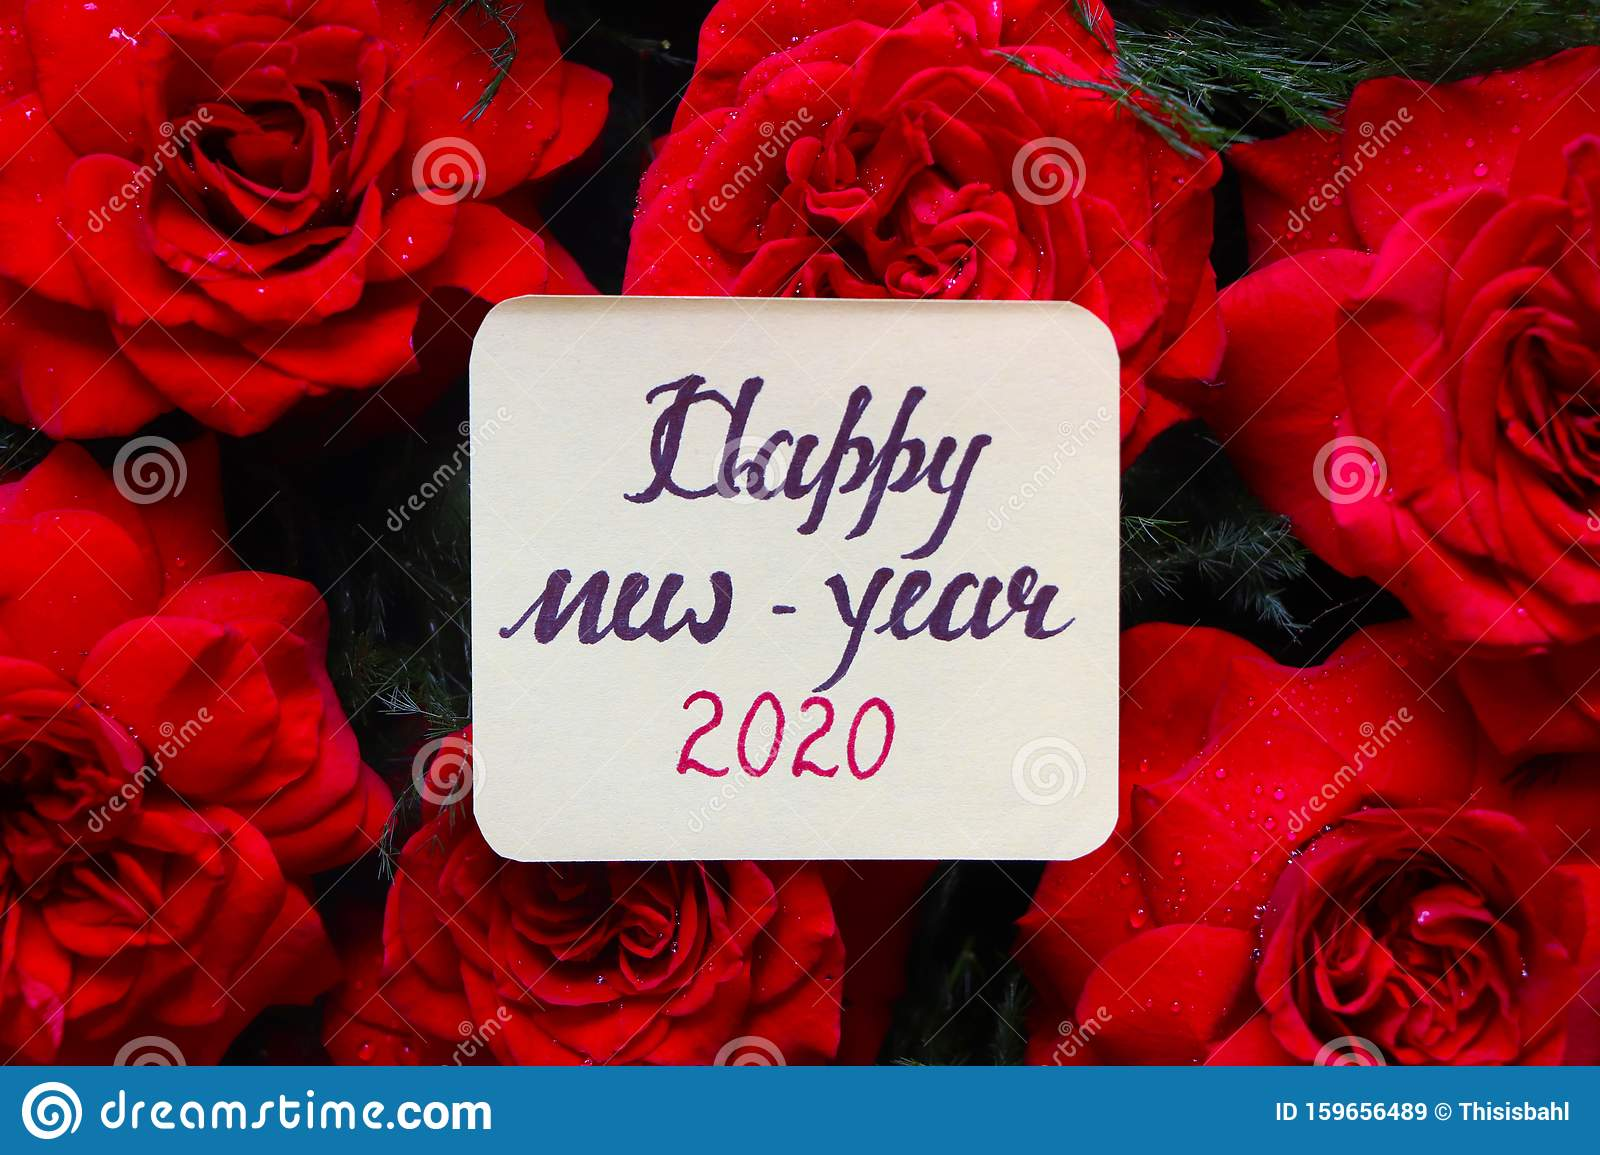 Happy New Year 2020 With Red Roses. Stock Image - Image of ...